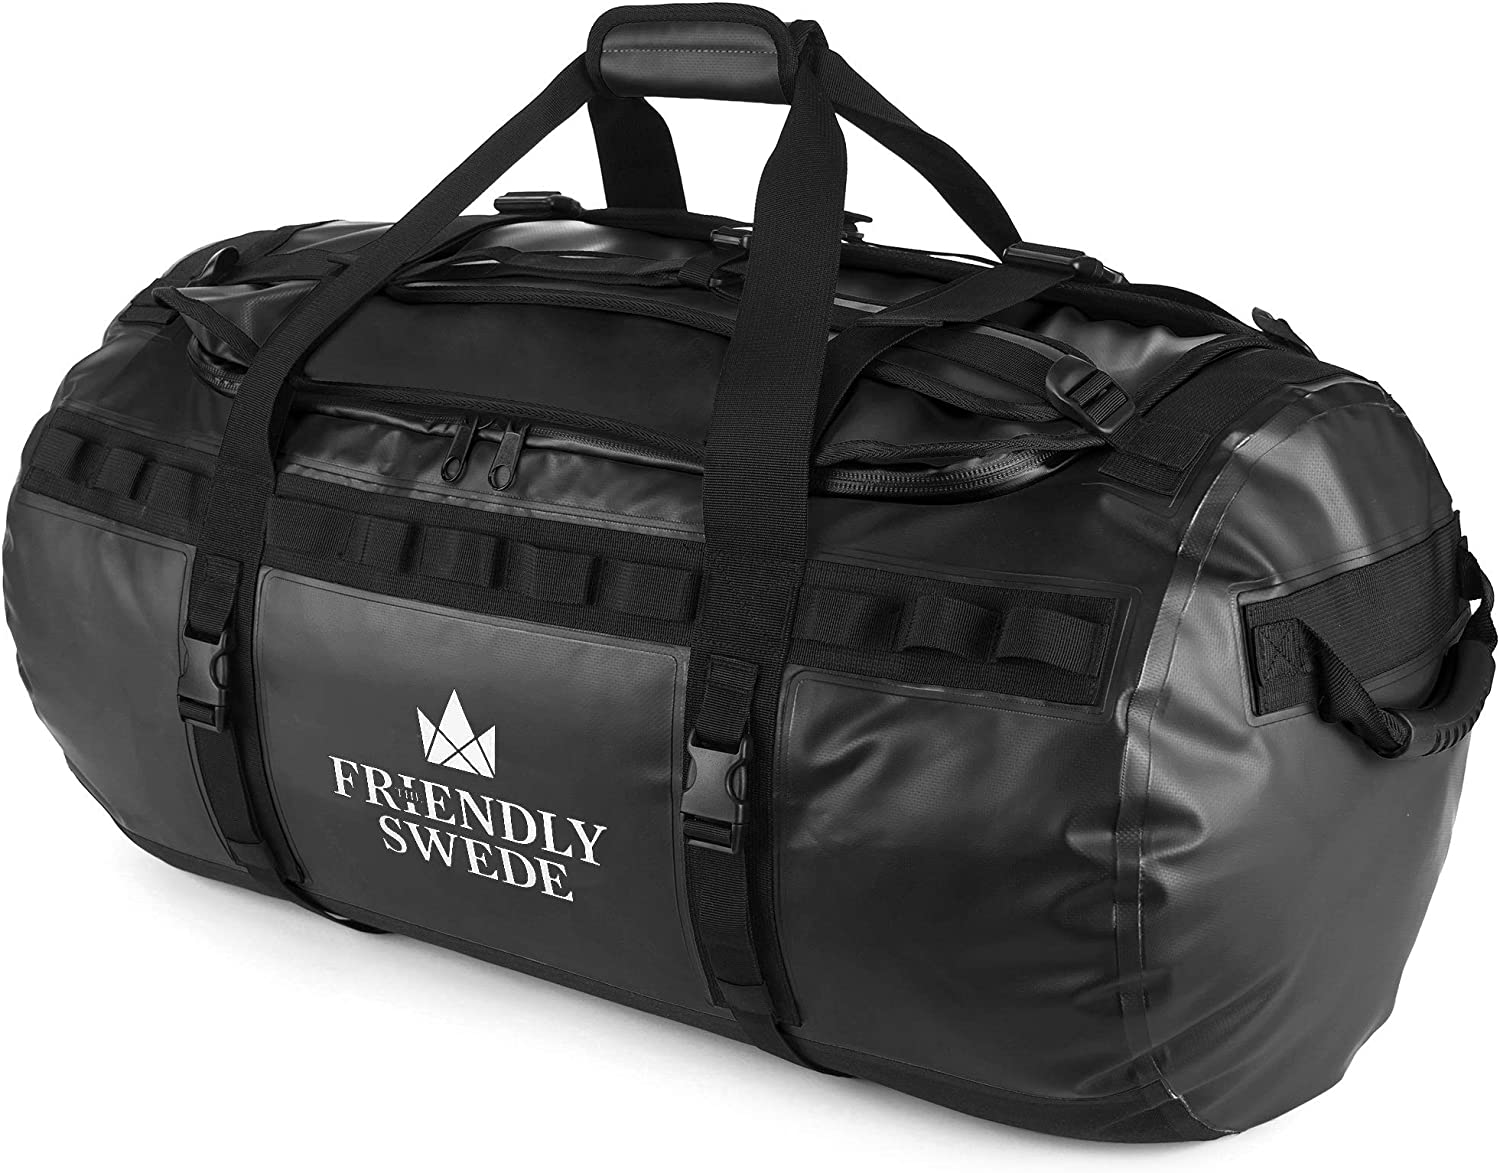 The Friendly Swede Duffel bag with Backpack Straps for Gym, Travel and Sports – SANDHAMN Duffle Waterproof Material